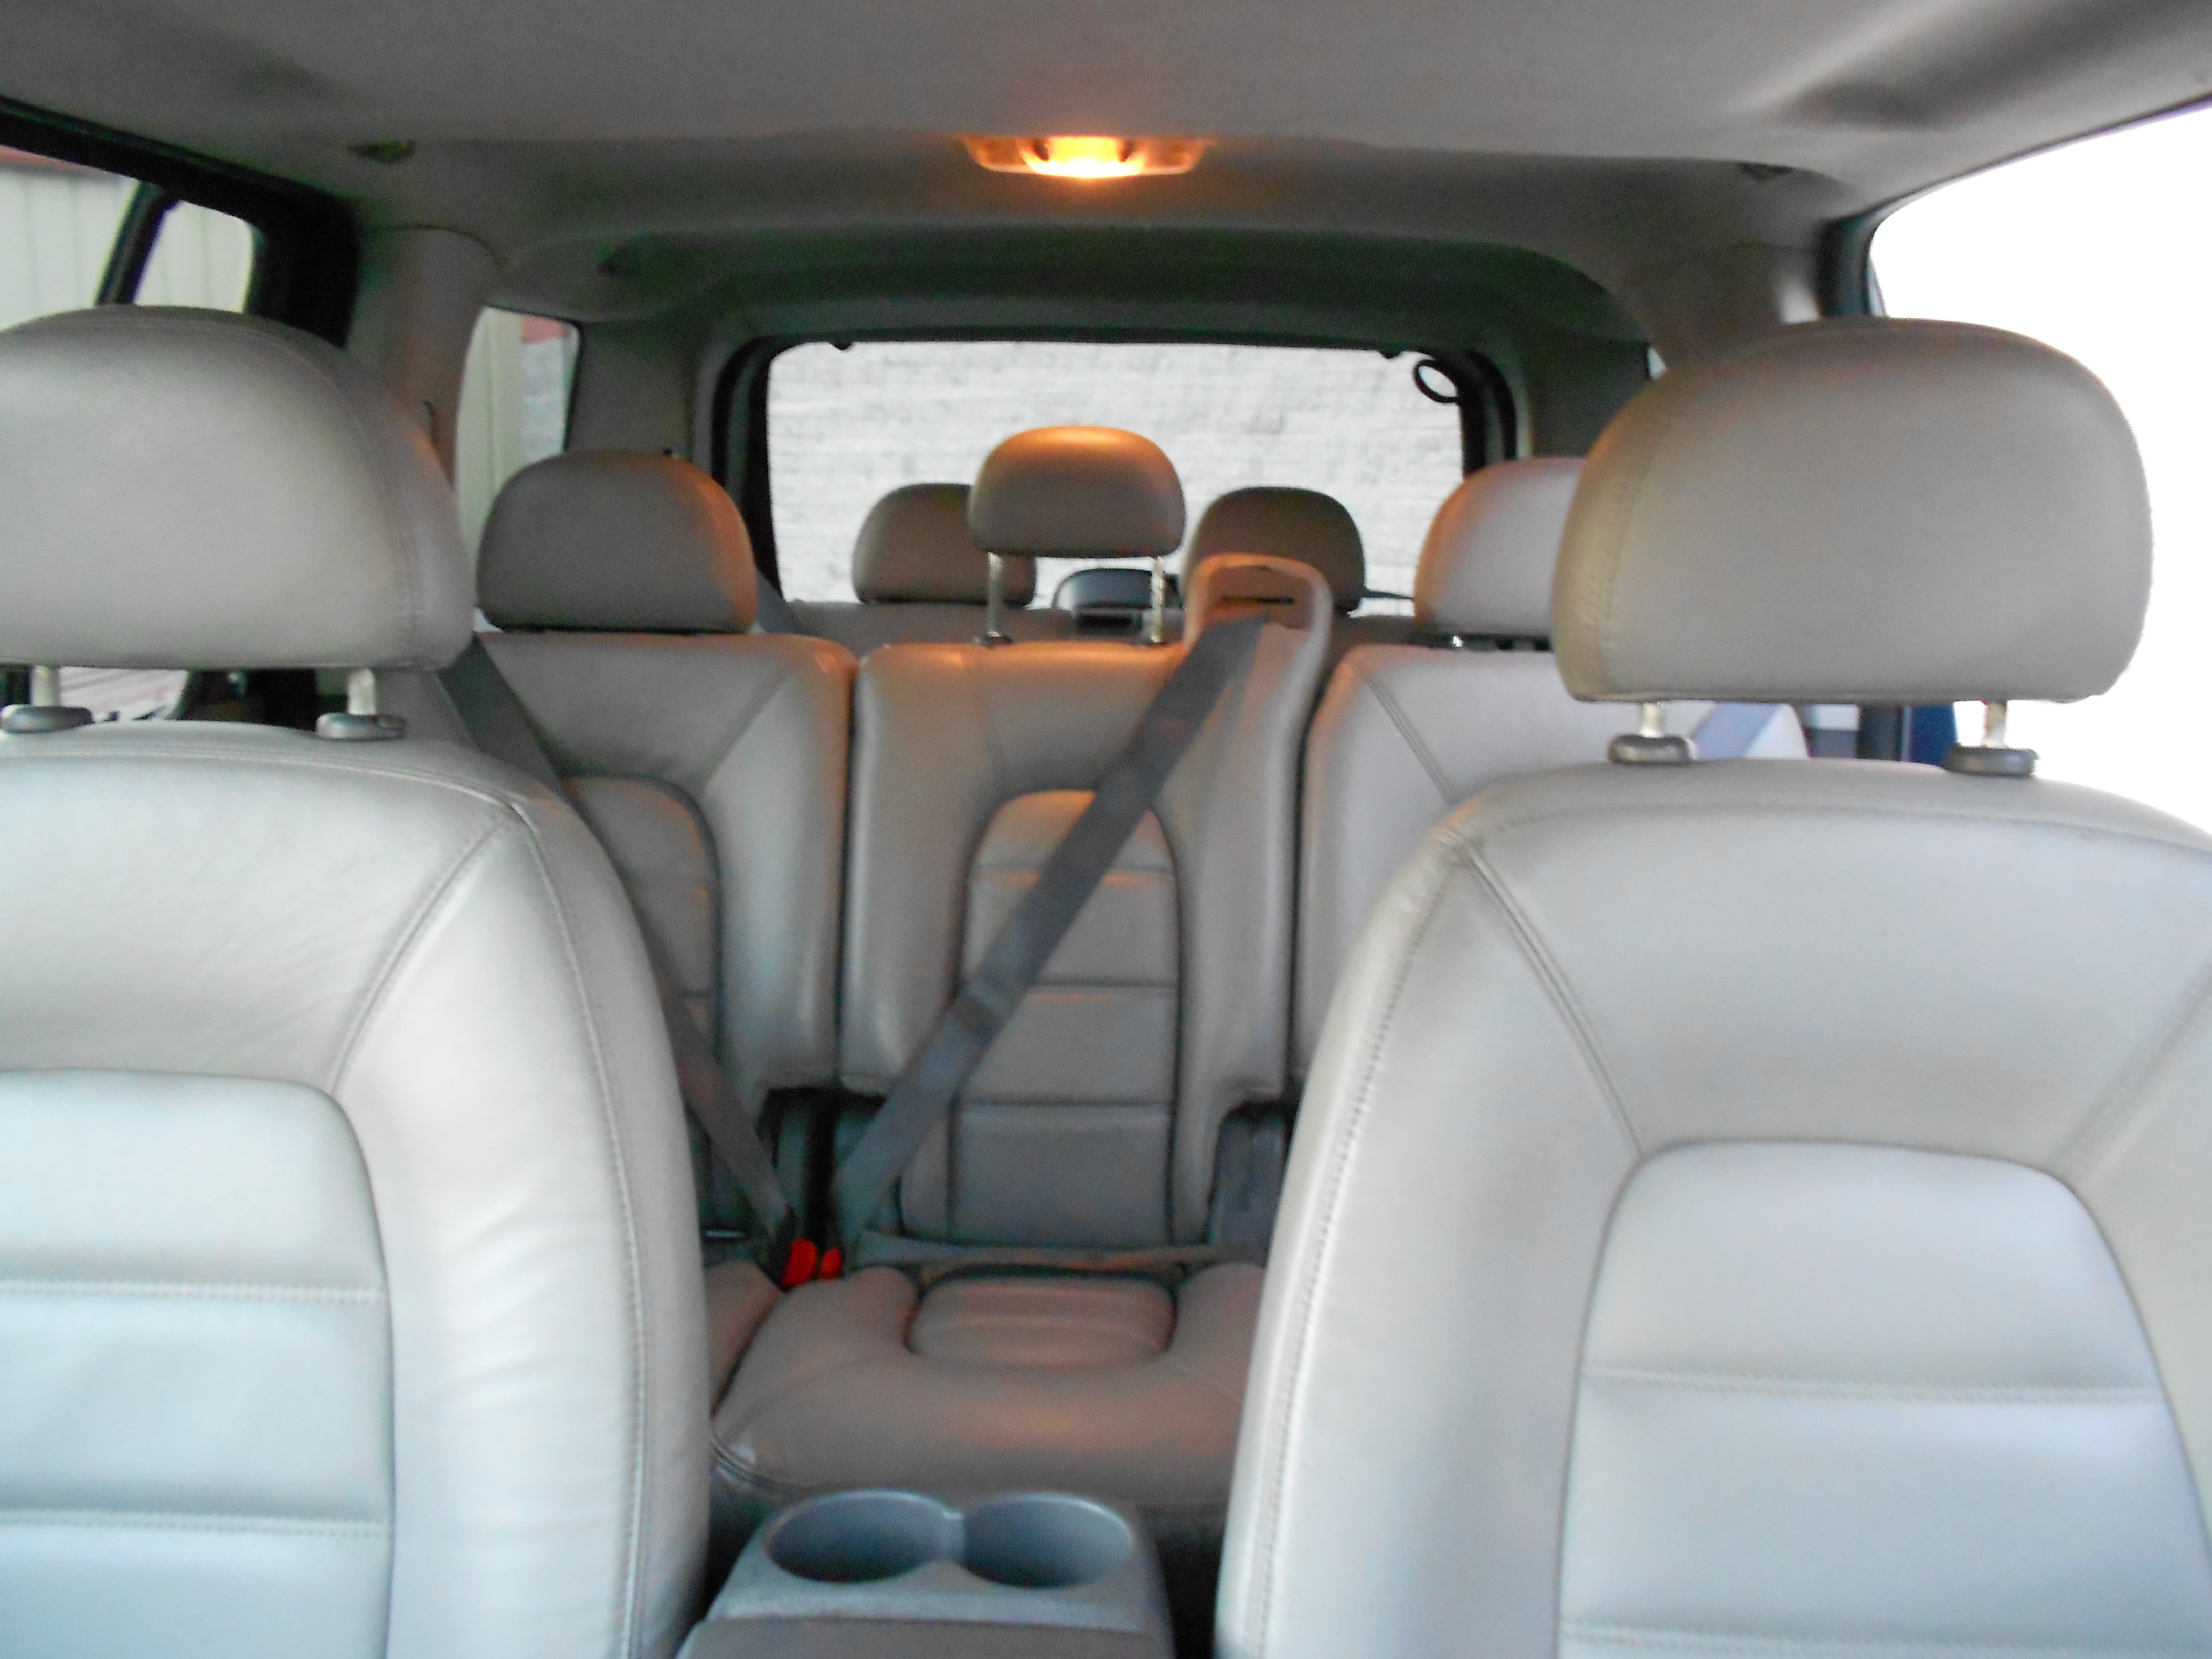 2005 FORD EXPLORER XLT 4X4 3RD ROW SEATING